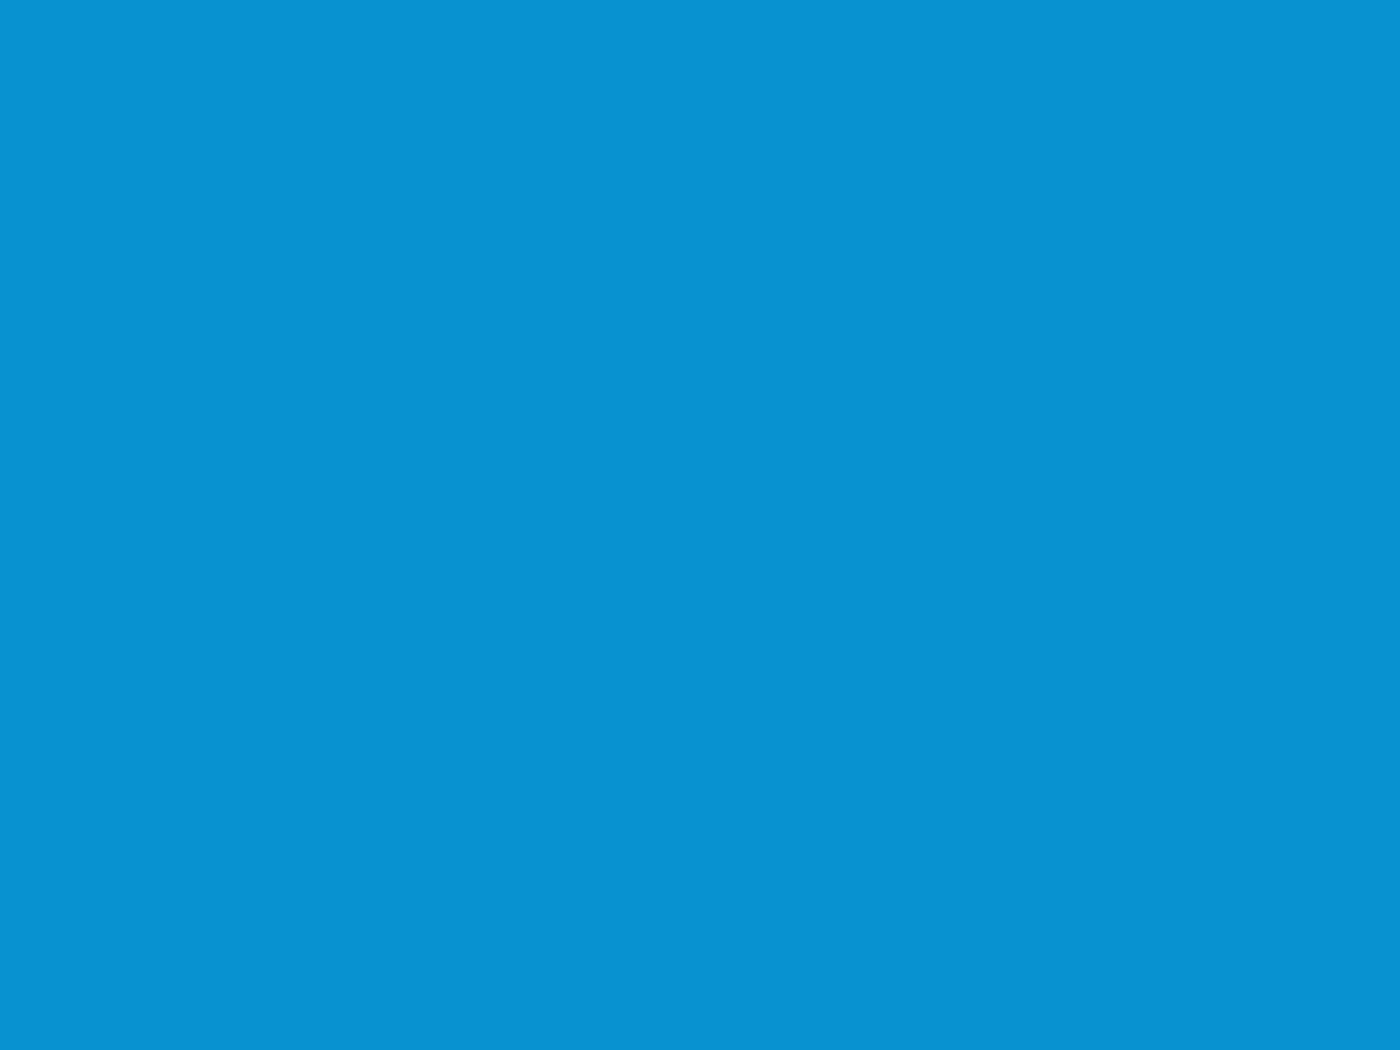 1400x1050 Rich Electric Blue Solid Color Background